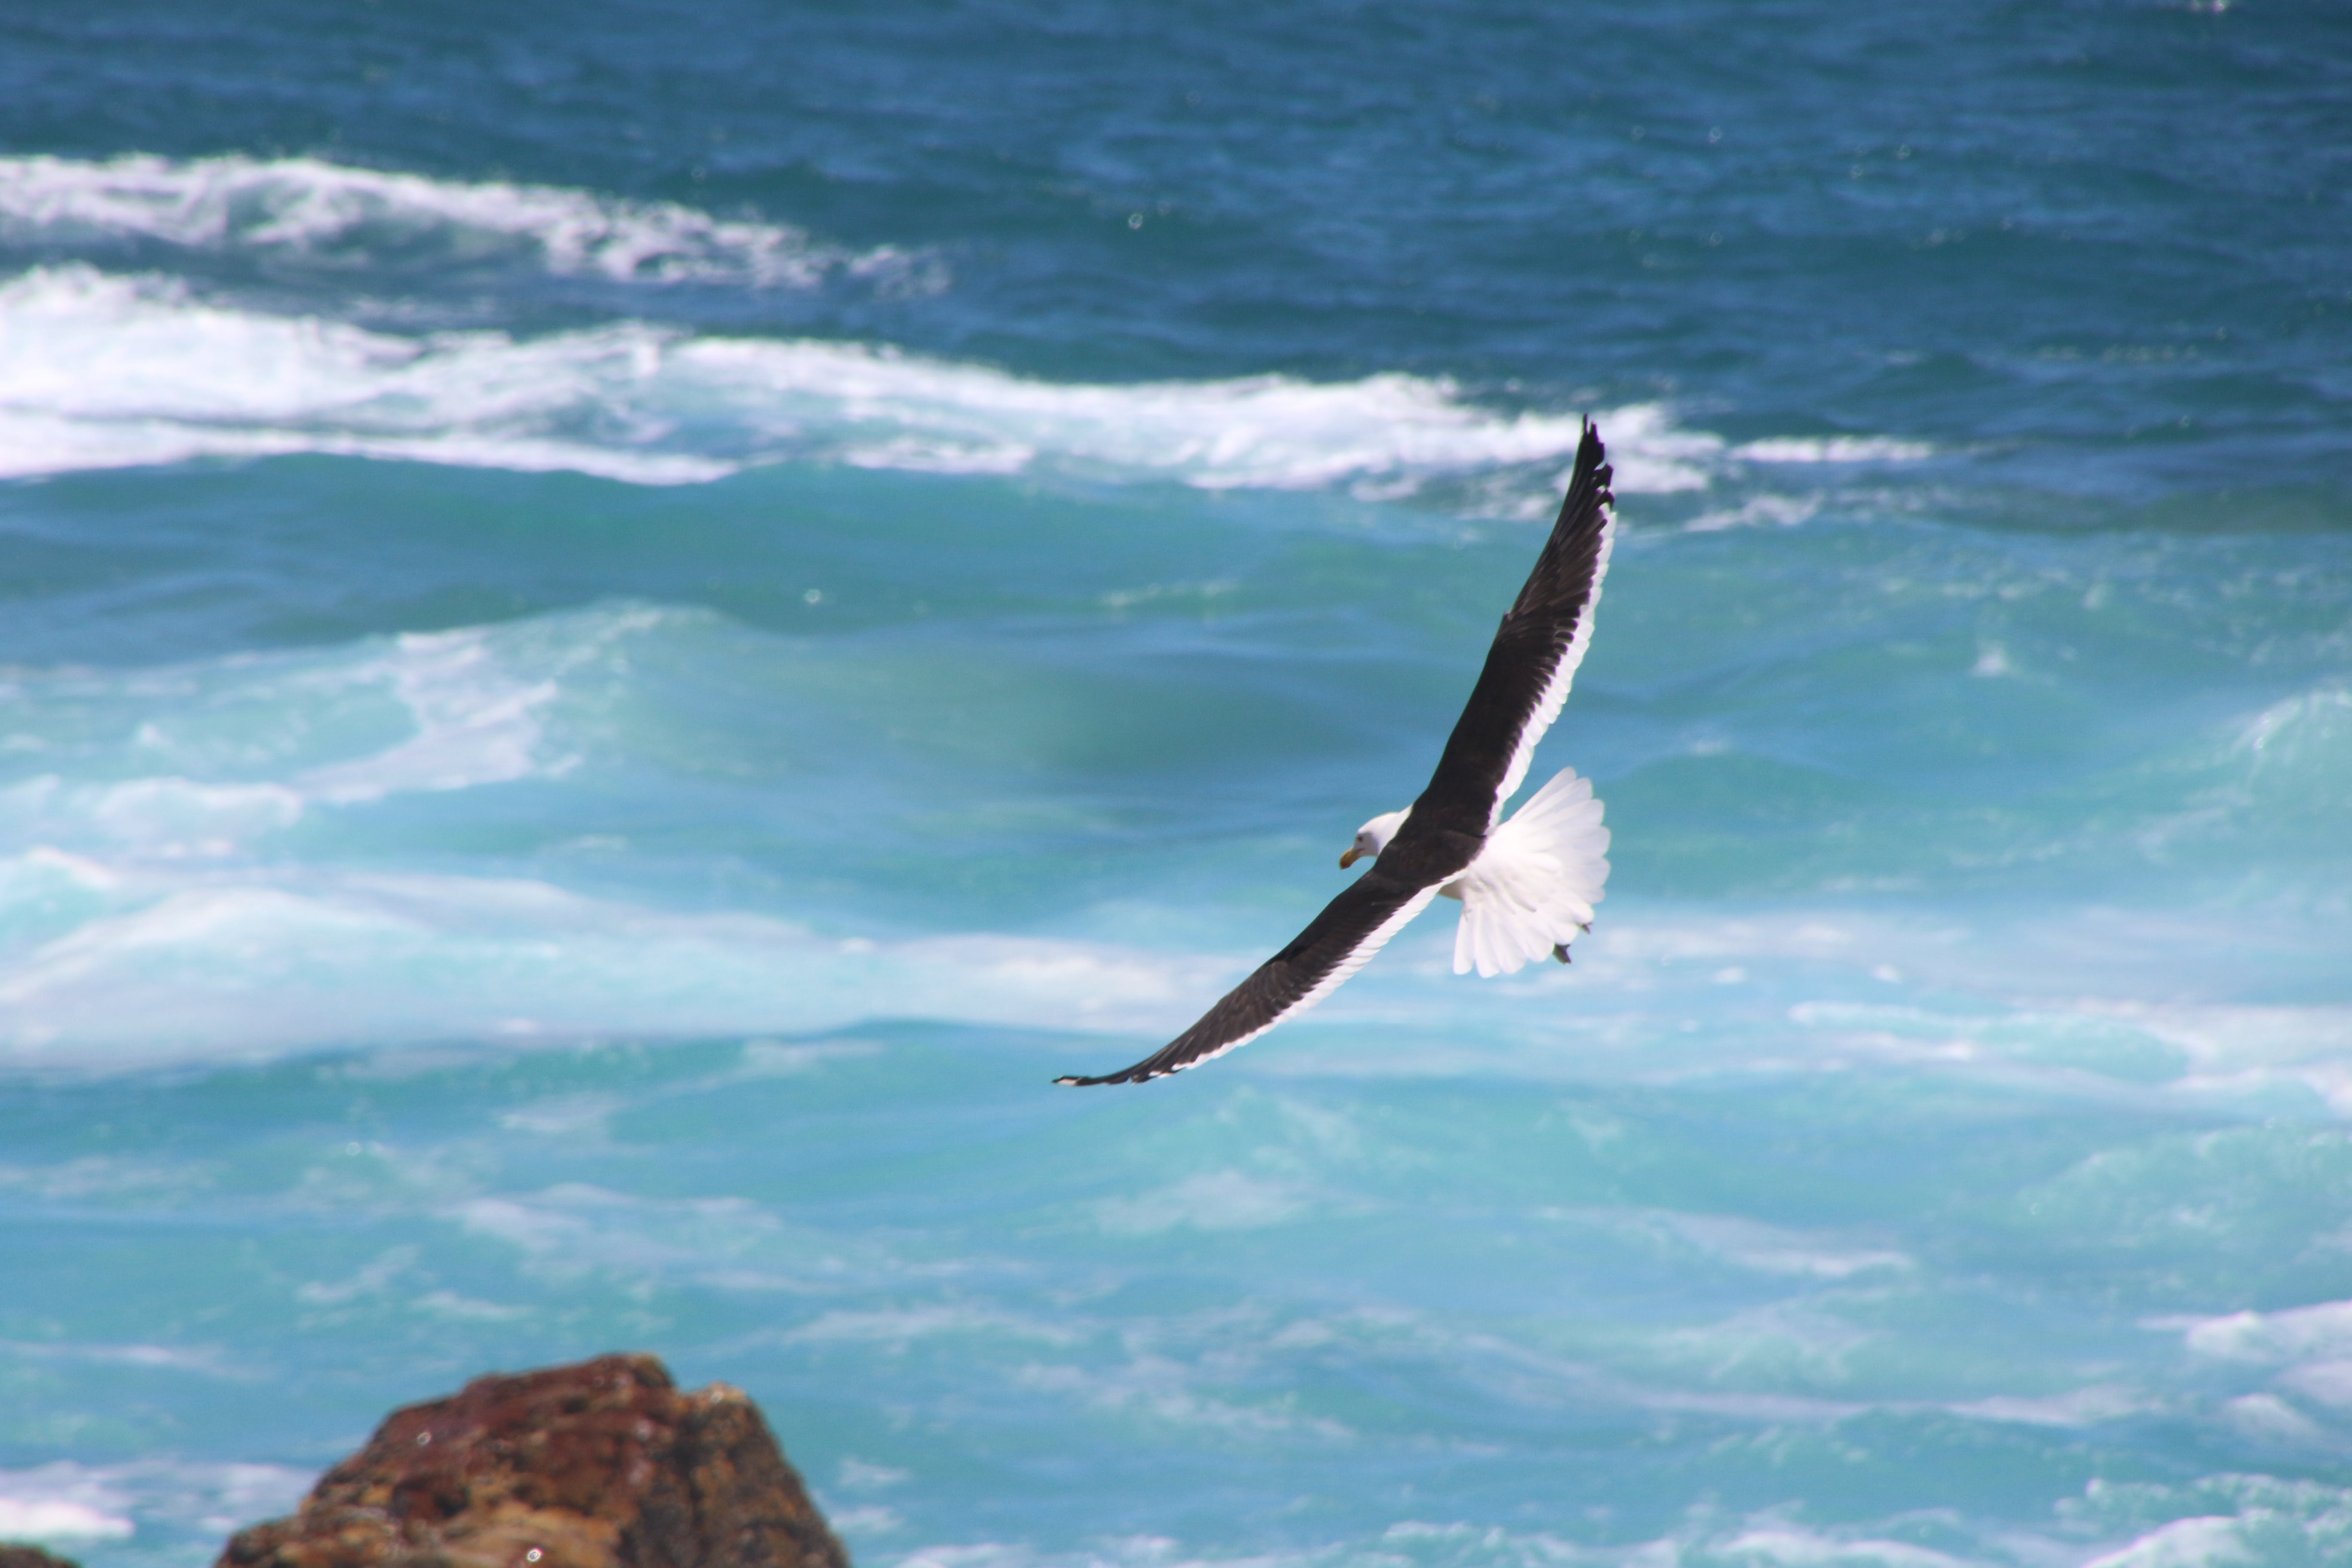 Time Lapse Photo of Soaring Bird Above the Sea